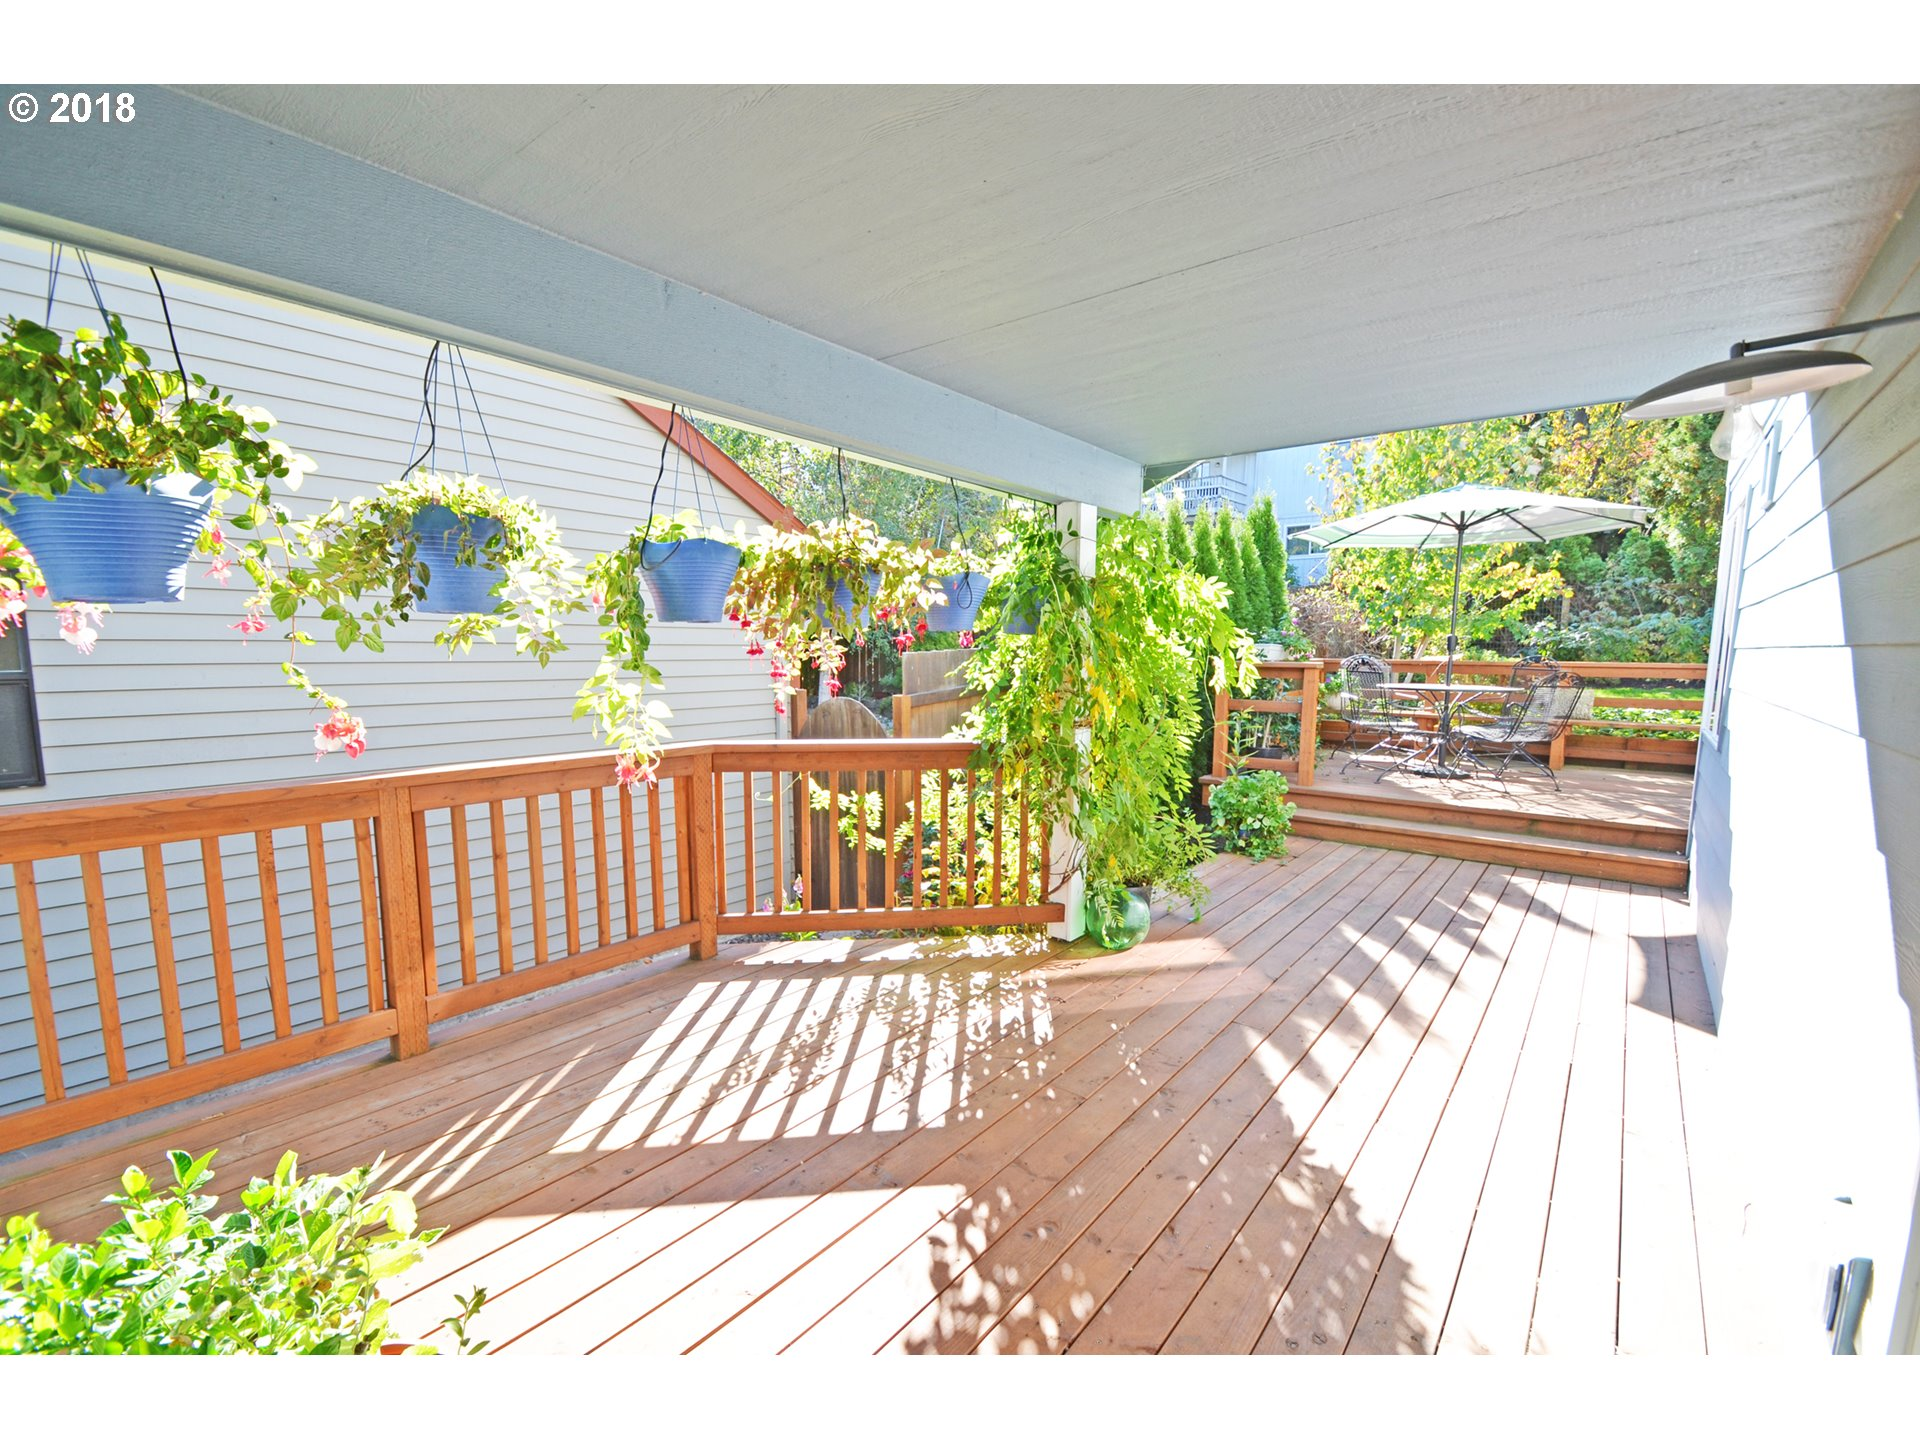 1976 sq. ft 4 bedrooms 2 bathrooms  House For Sale,Portland, OR